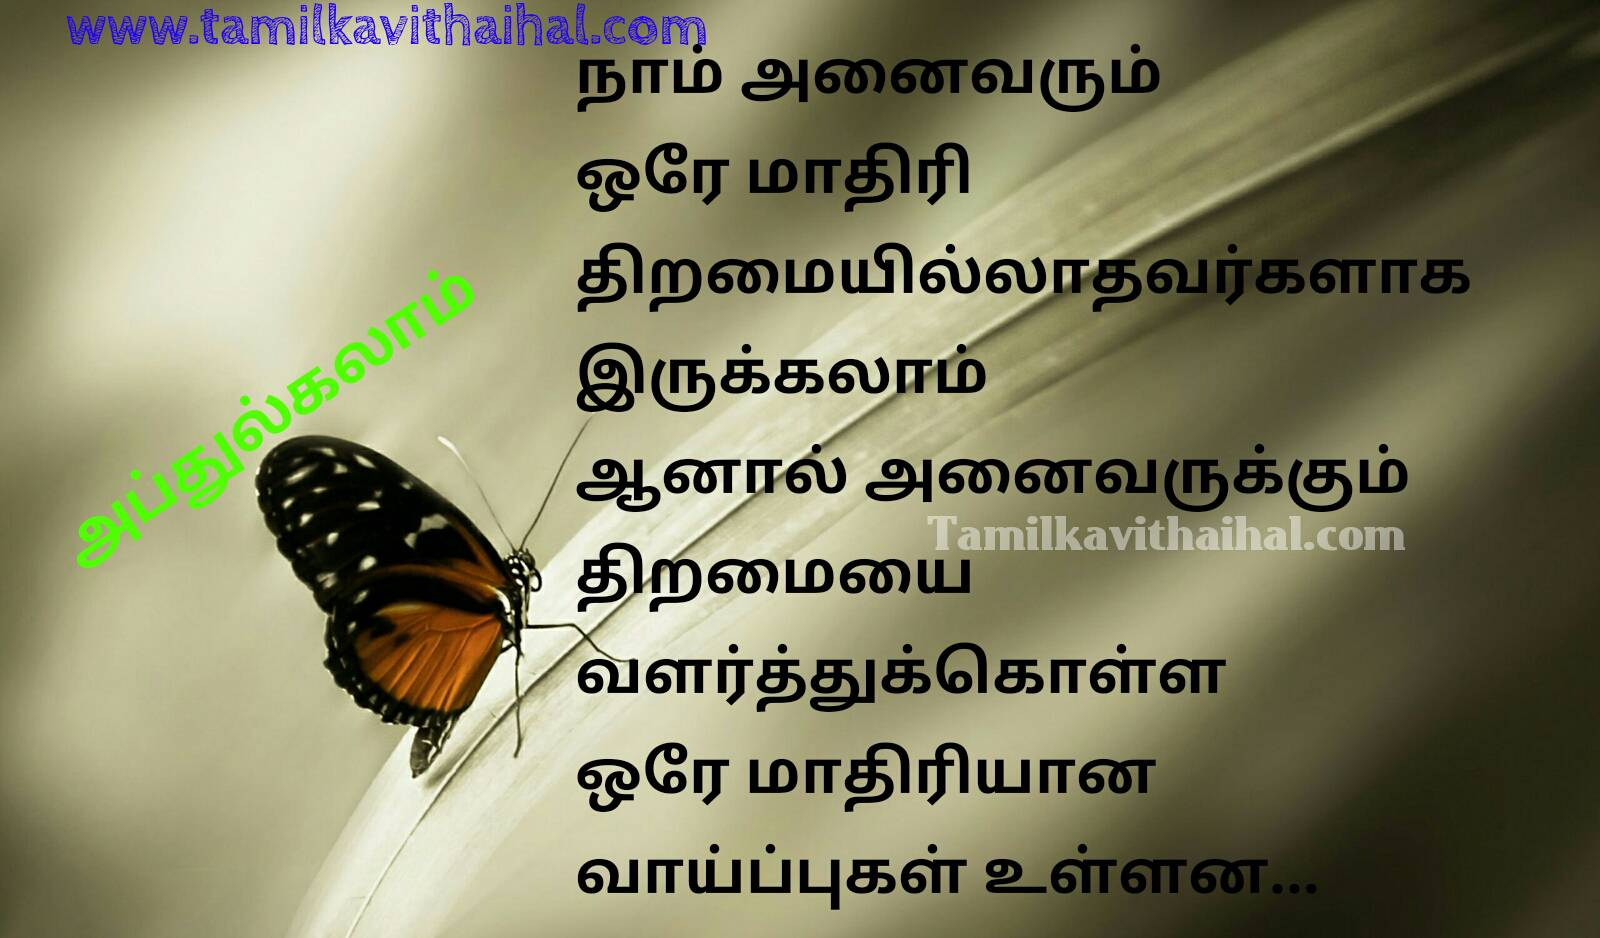 Best quotes for abj abdhul kalam insipirational thoughts and advice kavithai in tamil